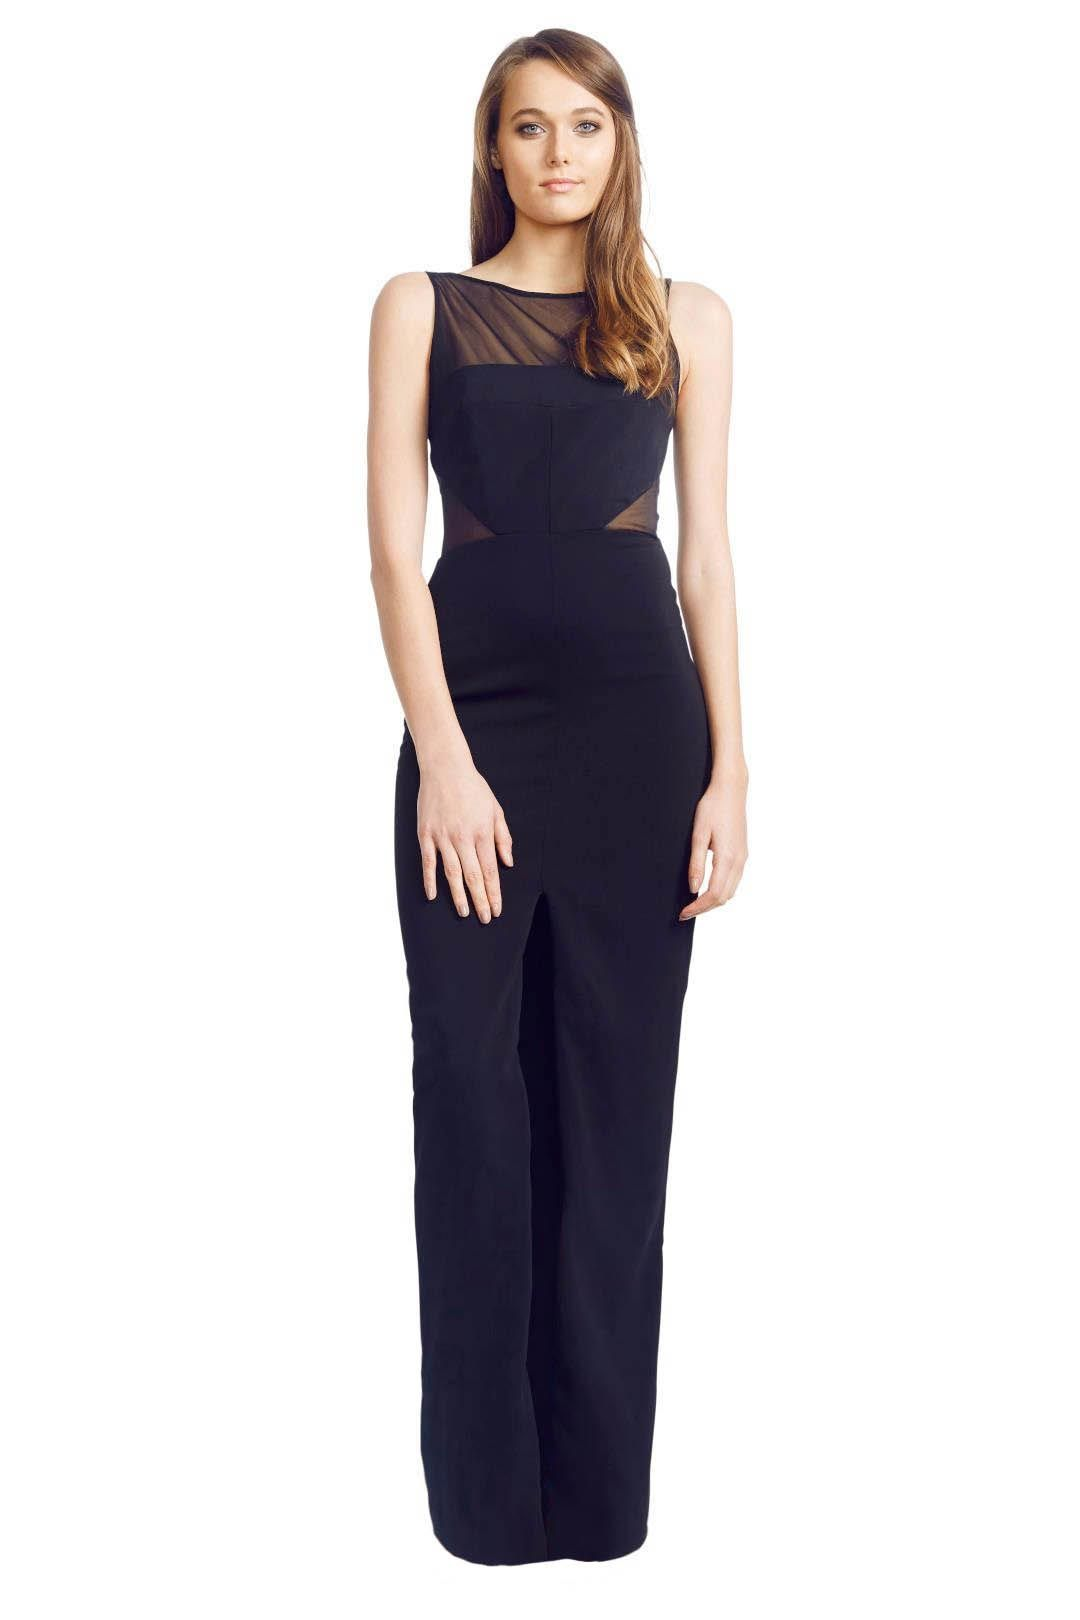 Badgley Mischka - Panel Gown - Black - Front